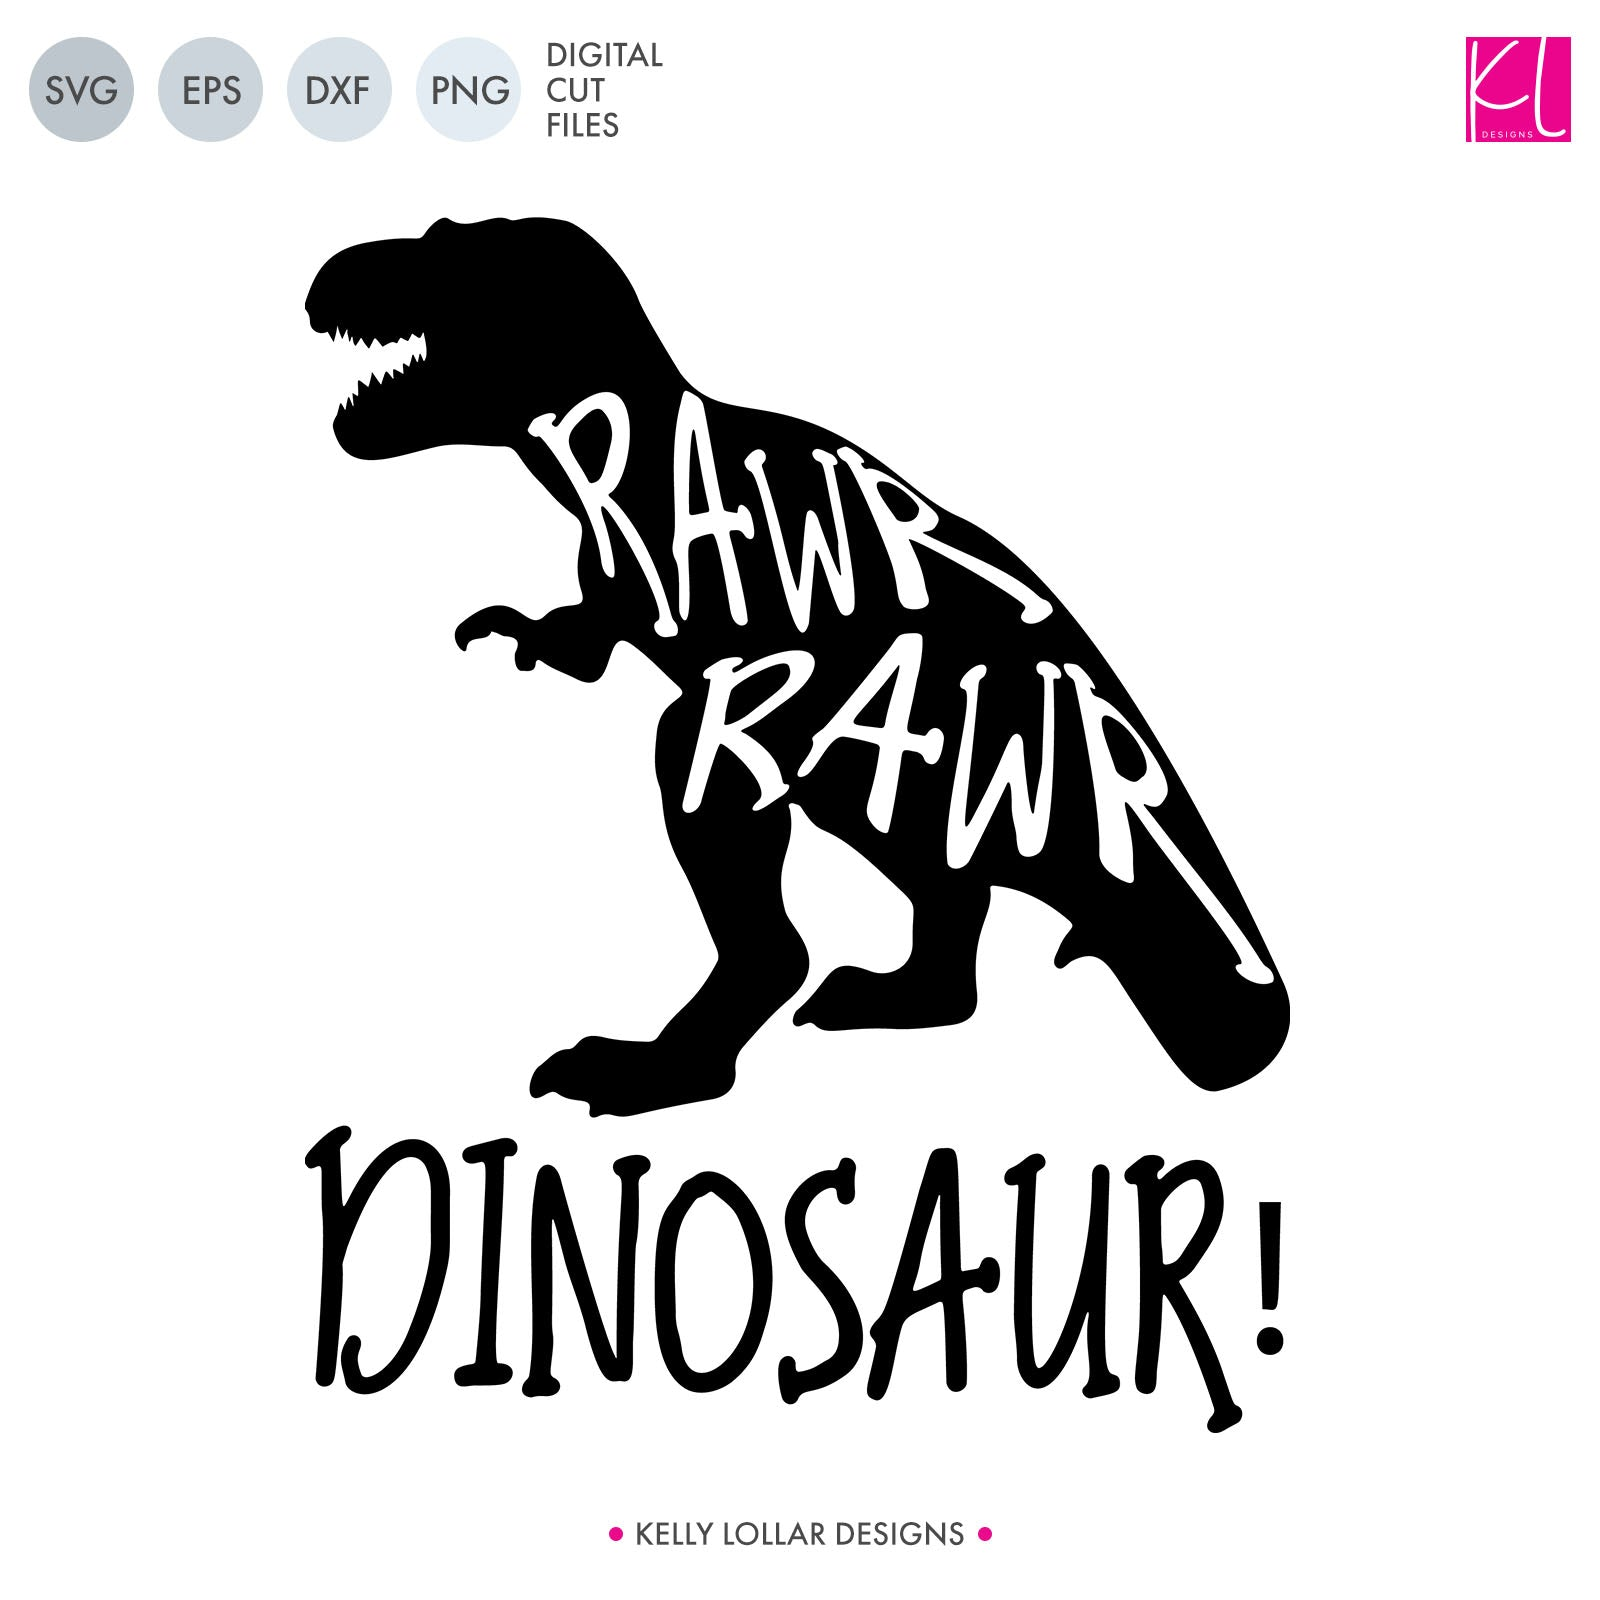 Rawr Rawr Dinosaur T-rex Quote | SVG DXF EPS PNG Cut Files | Free for Commercial Use